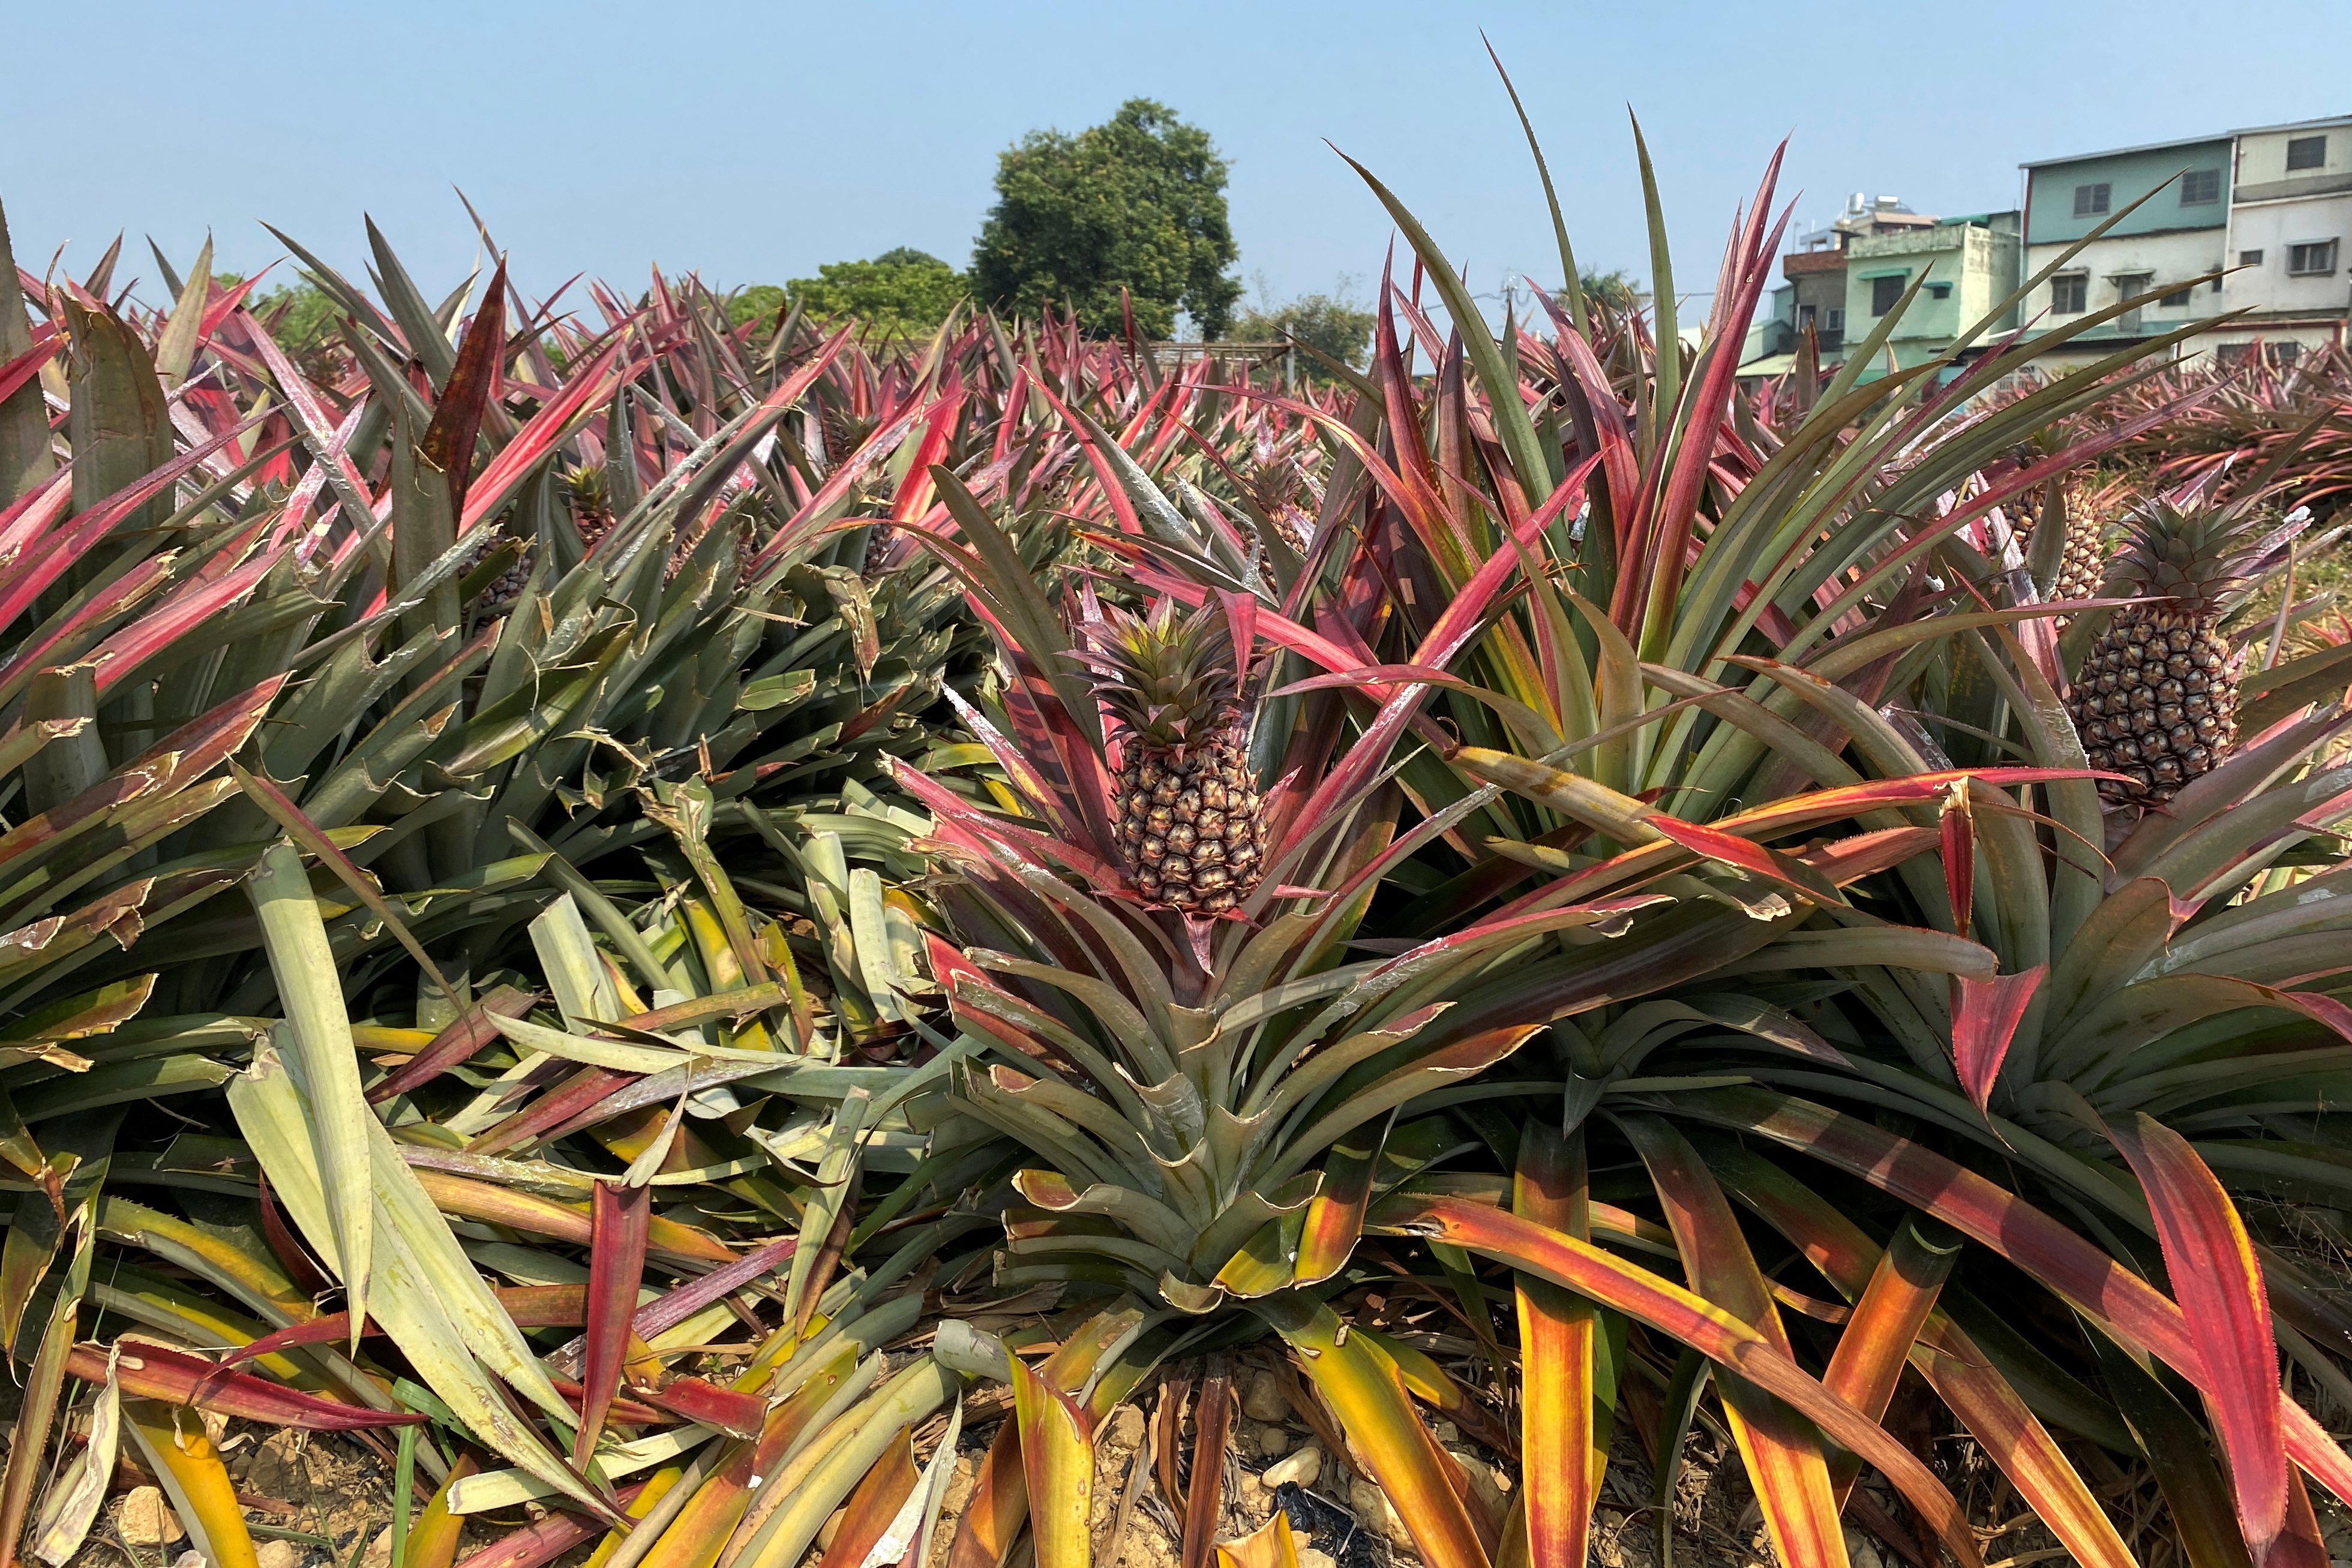 Pineapples grow in a field in Kaohsiung, Taiwan February 27, 2021. REUTERS/Ben Blanchard/Files